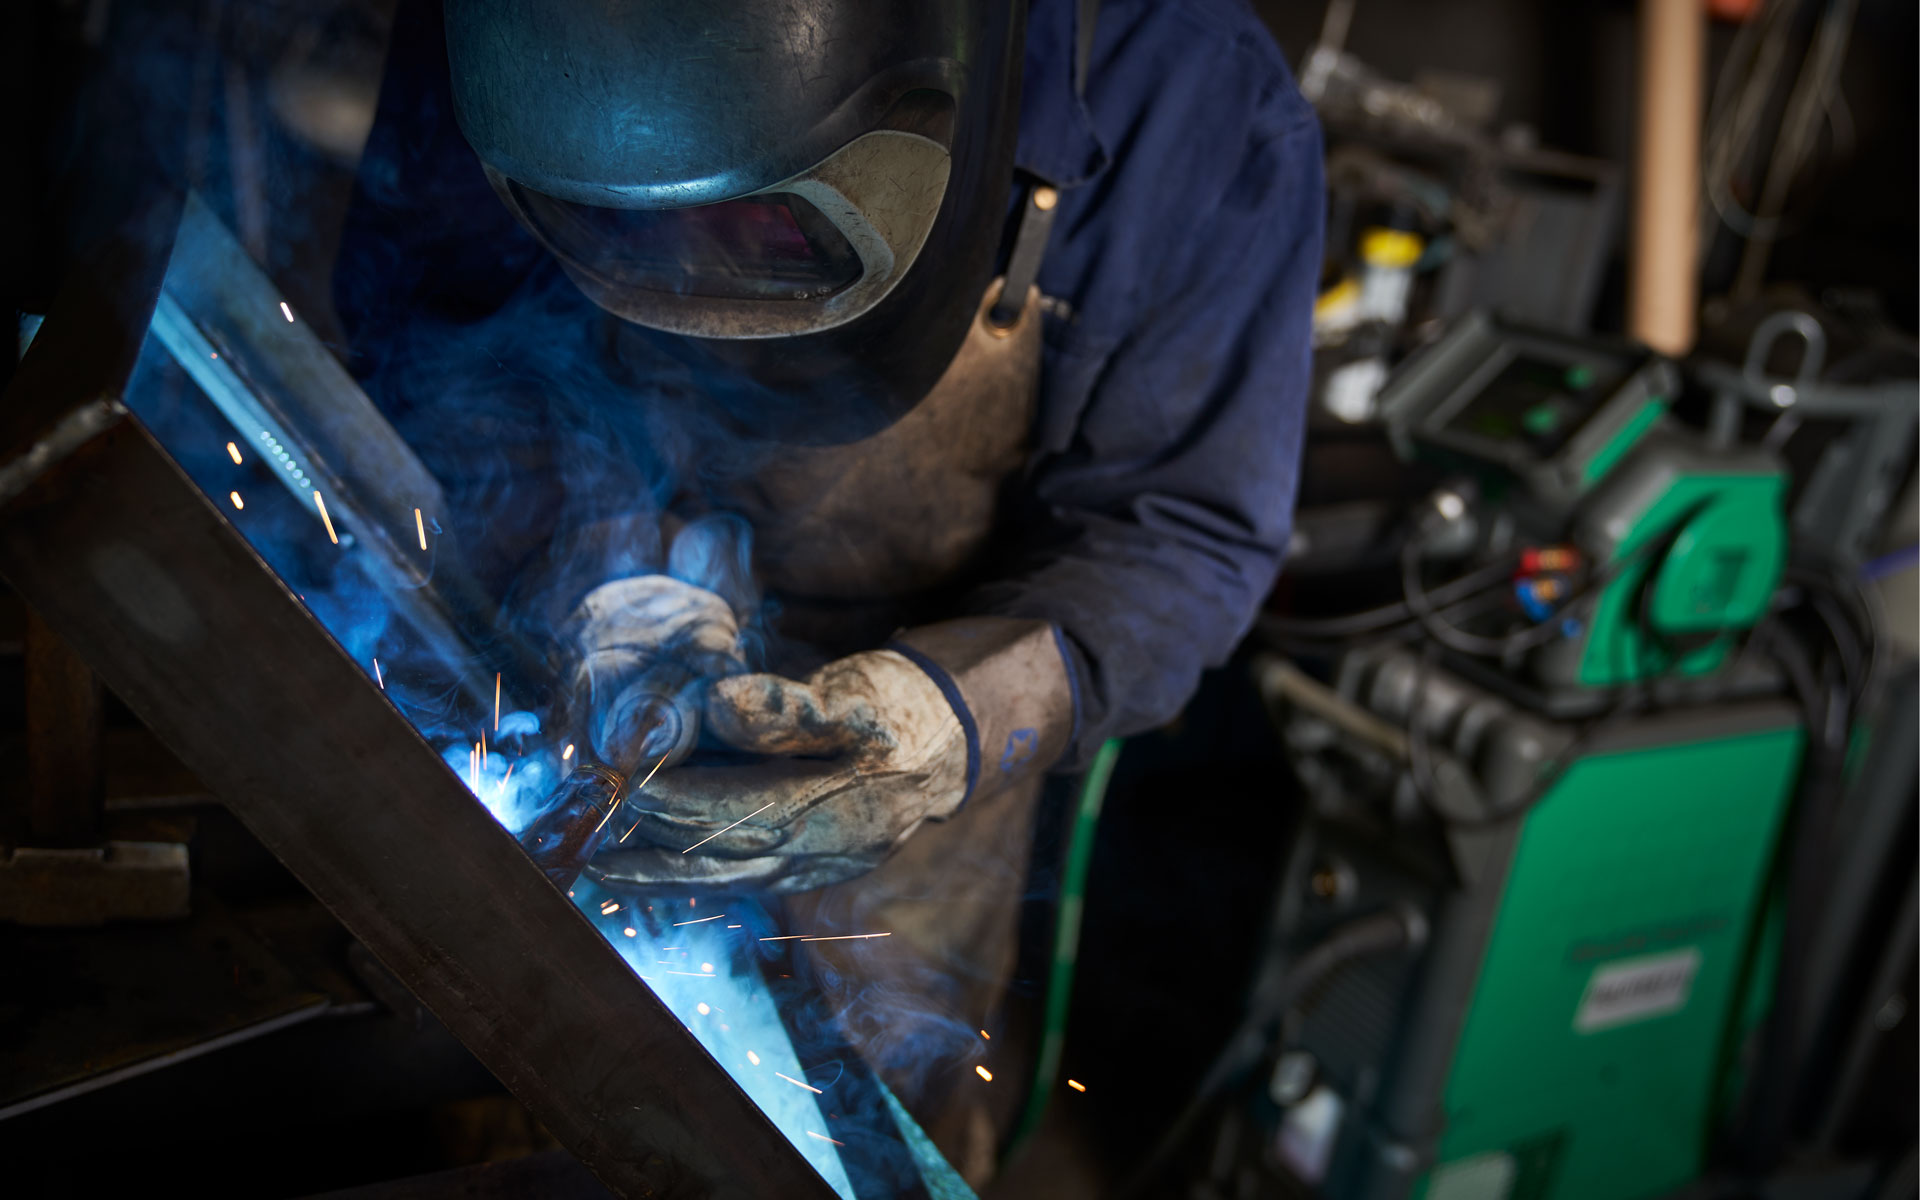 Welder and Sigma Select welding a workpiece